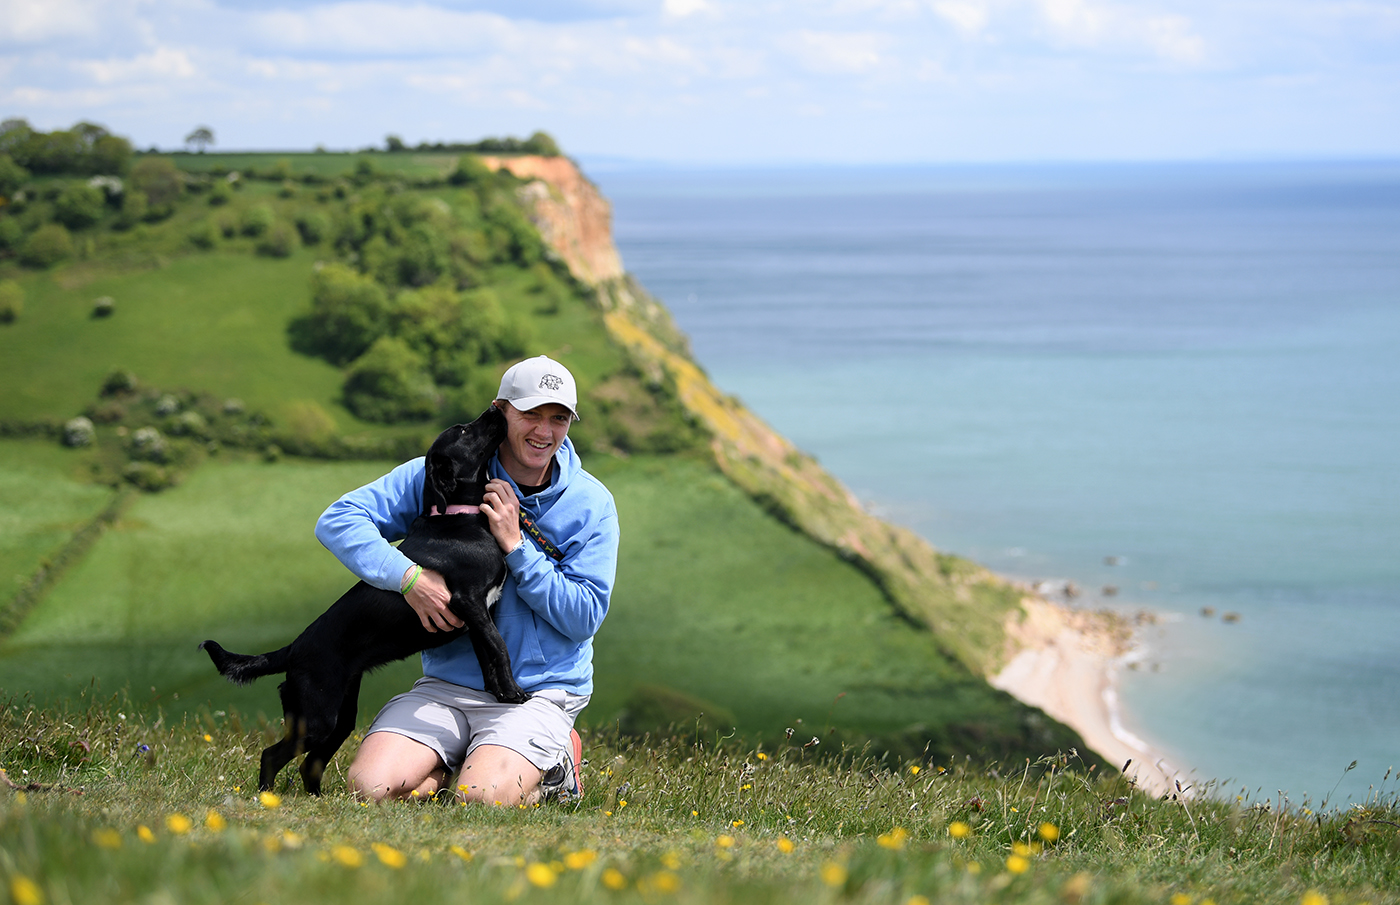 Dom Bess with his parents' dog, Tilly, in Shipton, Yorkshire